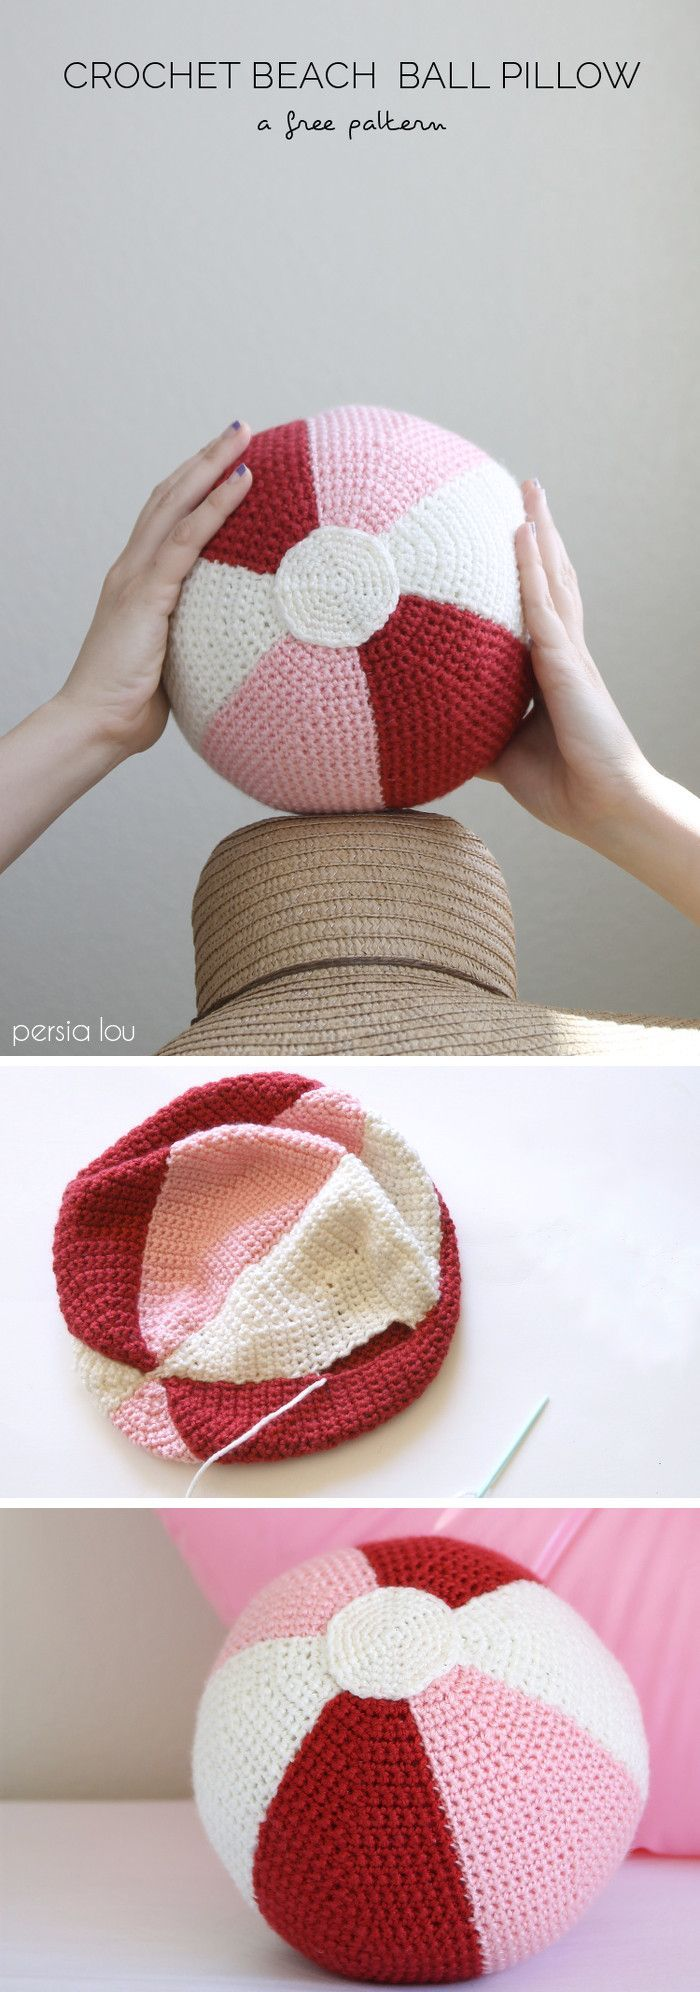 17 Best images about Crochet Toys on Pinterest Free ...